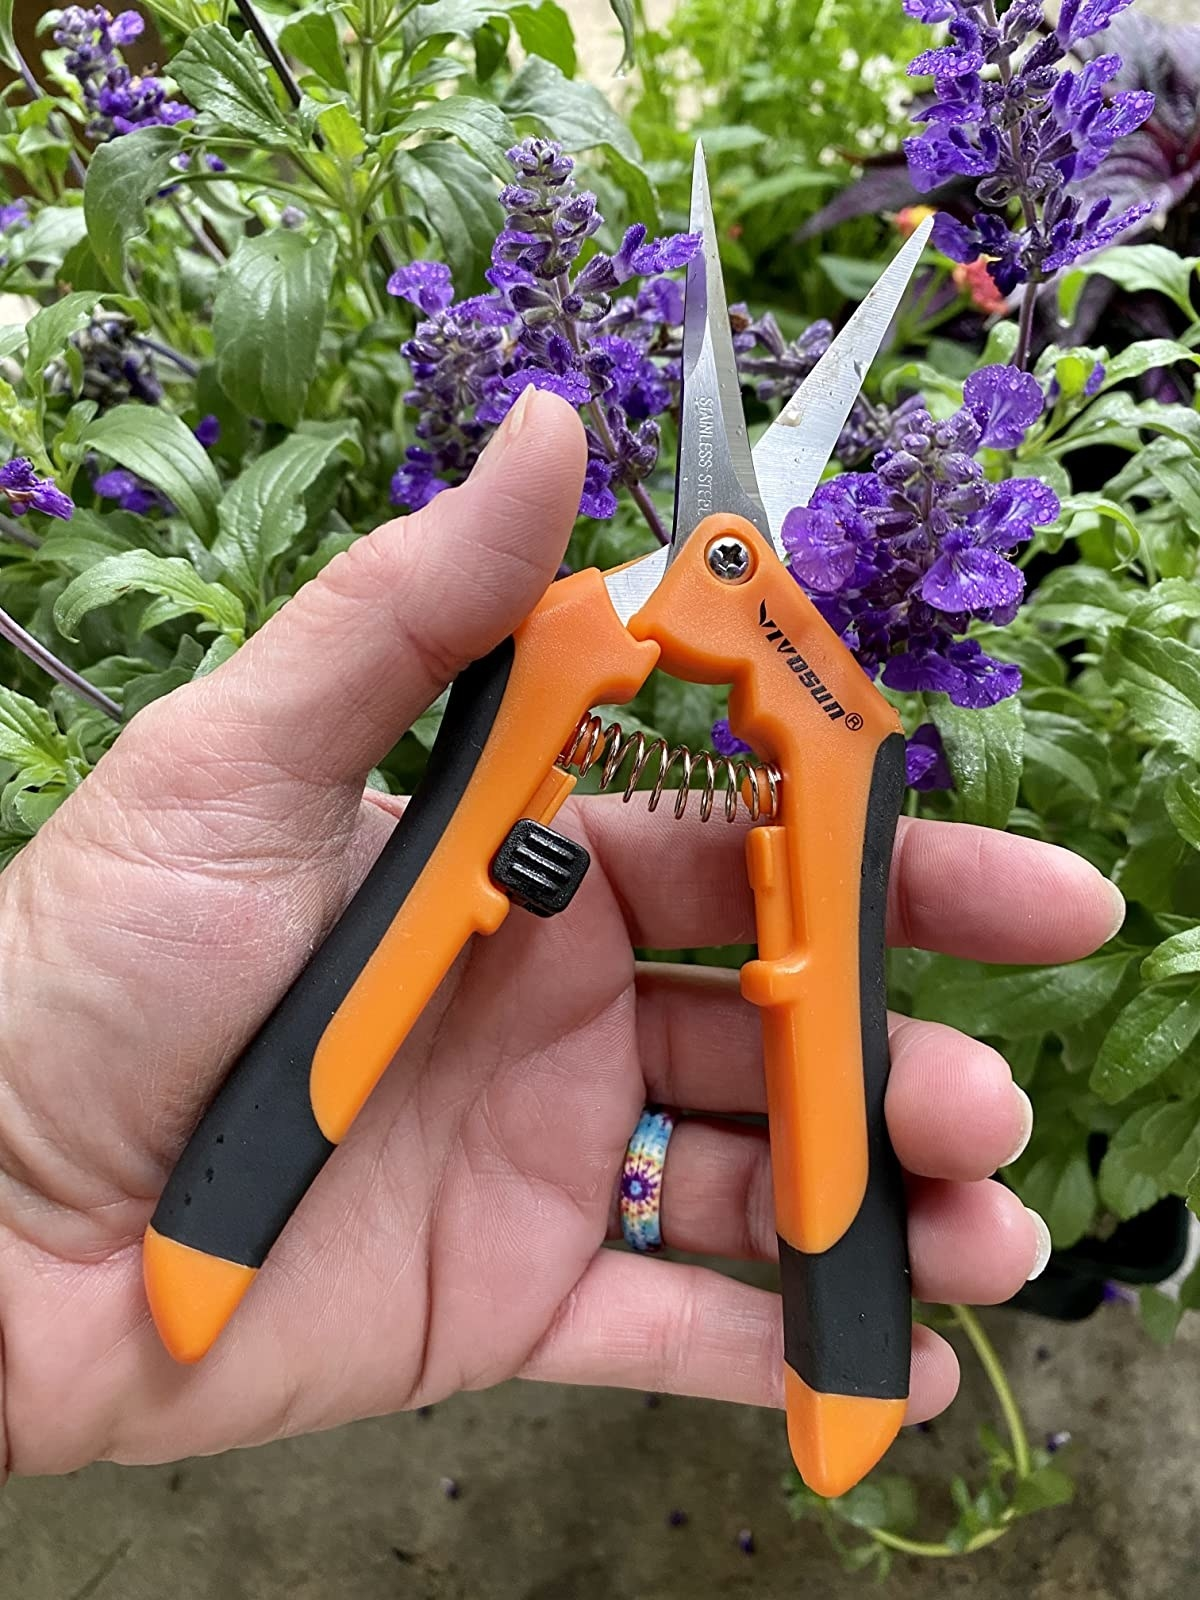 Reviewer's hand holds the orange and black shears